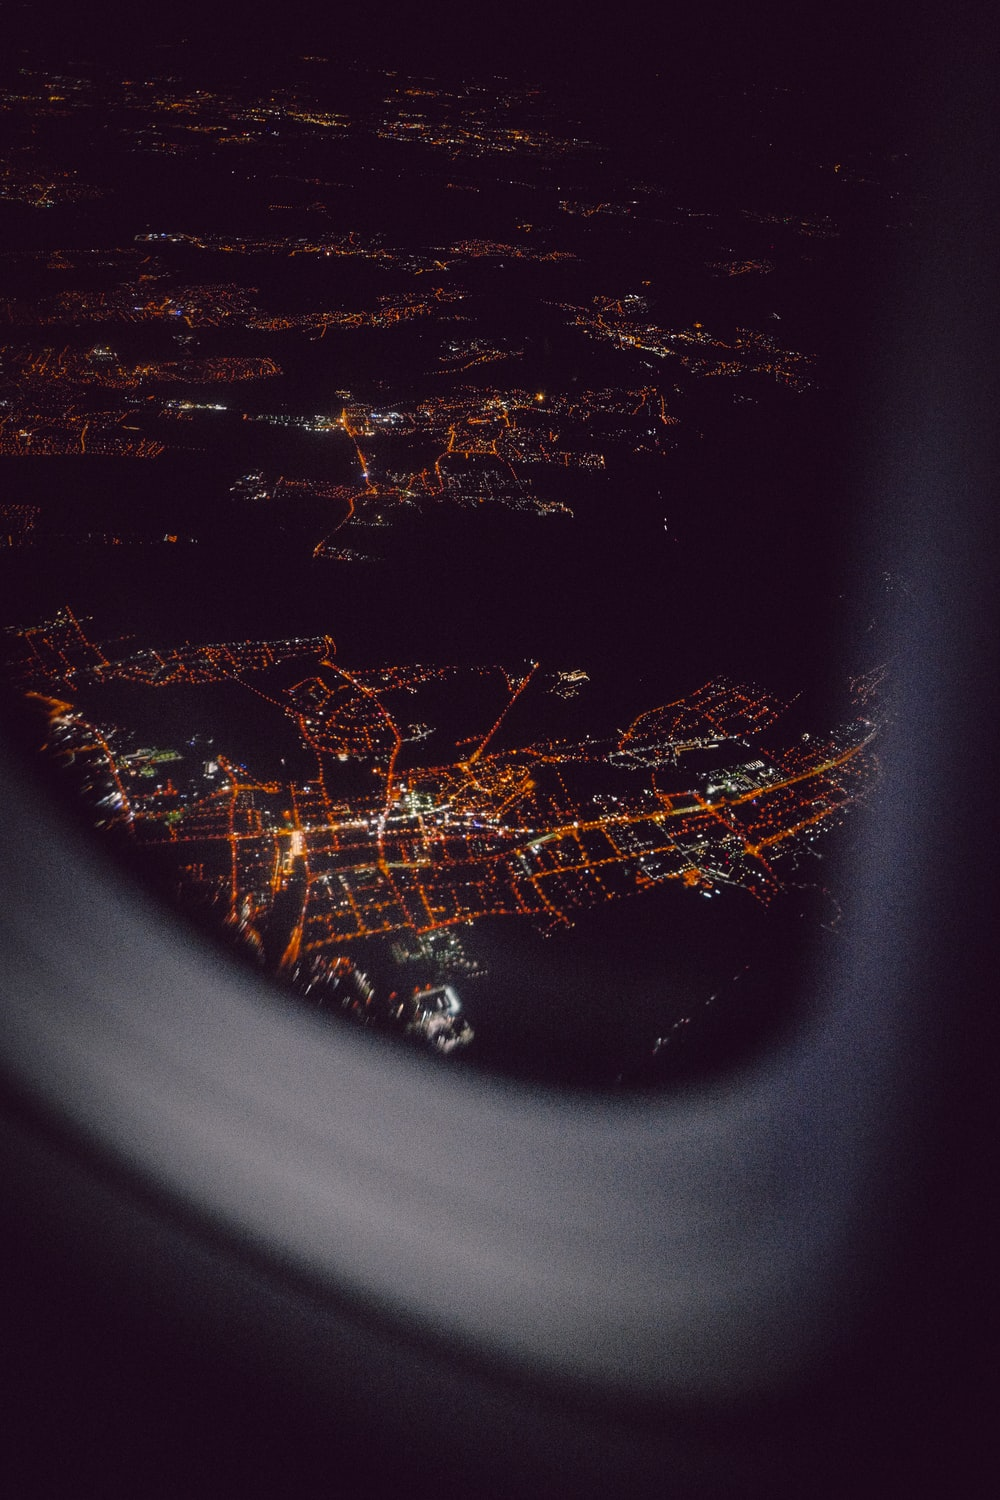 aerial view from airplane's window during night time